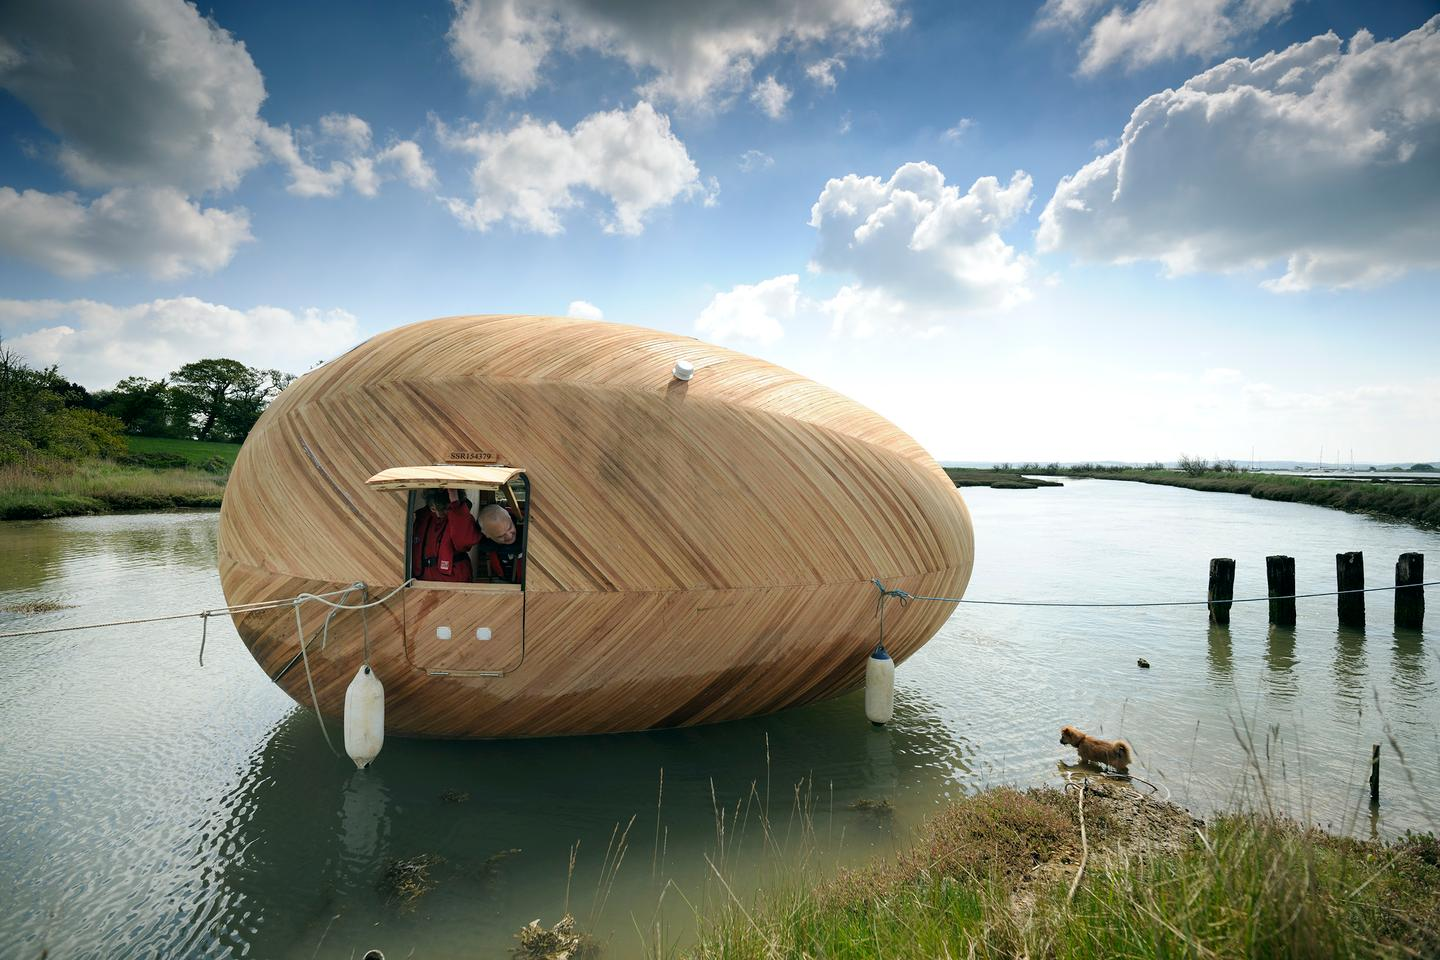 Exbury Egg is located on the shore of Beaulieu River (Photo: Nigel Rigden)